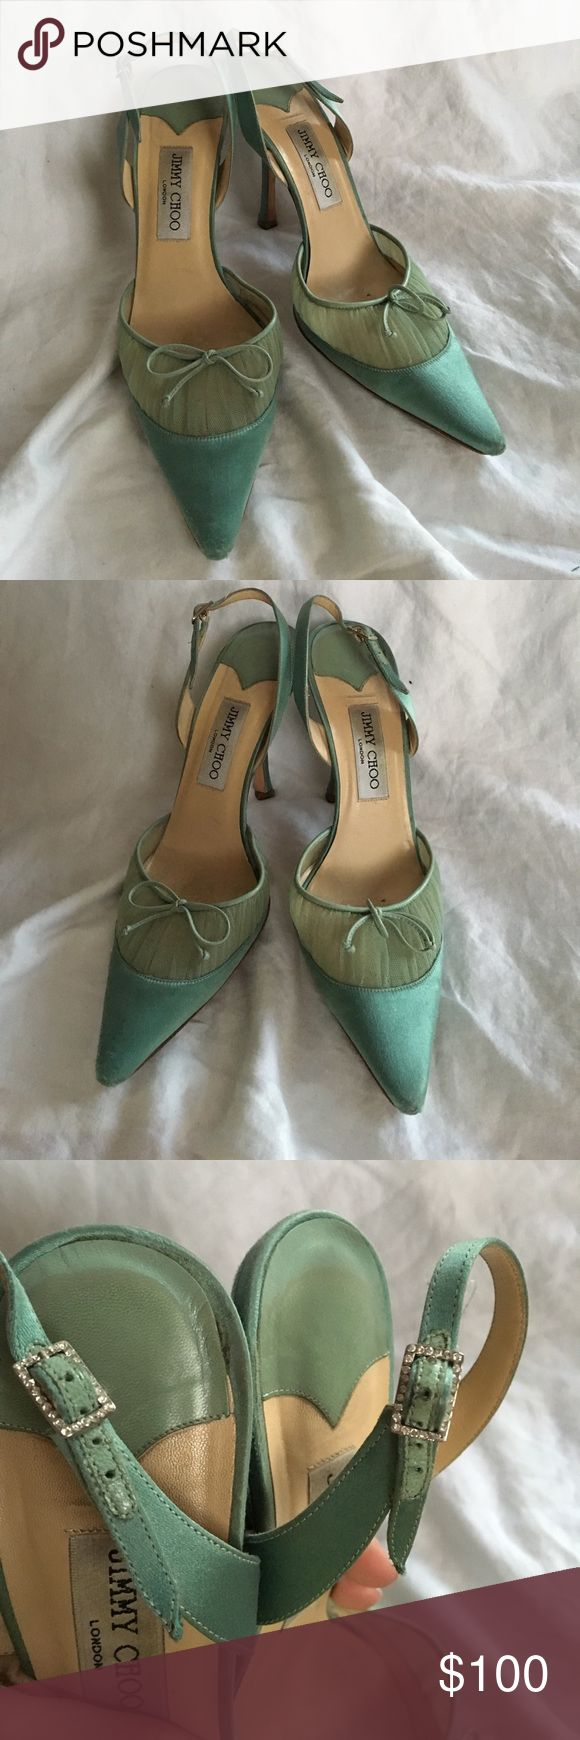 """Jimmy Choo Mint green heels These are gorgeous! Beautiful green silk with a mesh pleated accent pointed toe slingback heels. Classic Jimmy Choo! (These are pre-2009). Decent condition, the toes show wear, but not noticeable when worn. Heel tips in good condition, and the heels look good. I do not have the box, but will ship in the original dustbag.These are priced to sell. Size 40 (fits like a US 8.5/9) measures 10.75"""" from heel to toe, with a 4"""" heel. I offer bundle discounts and I ship…"""